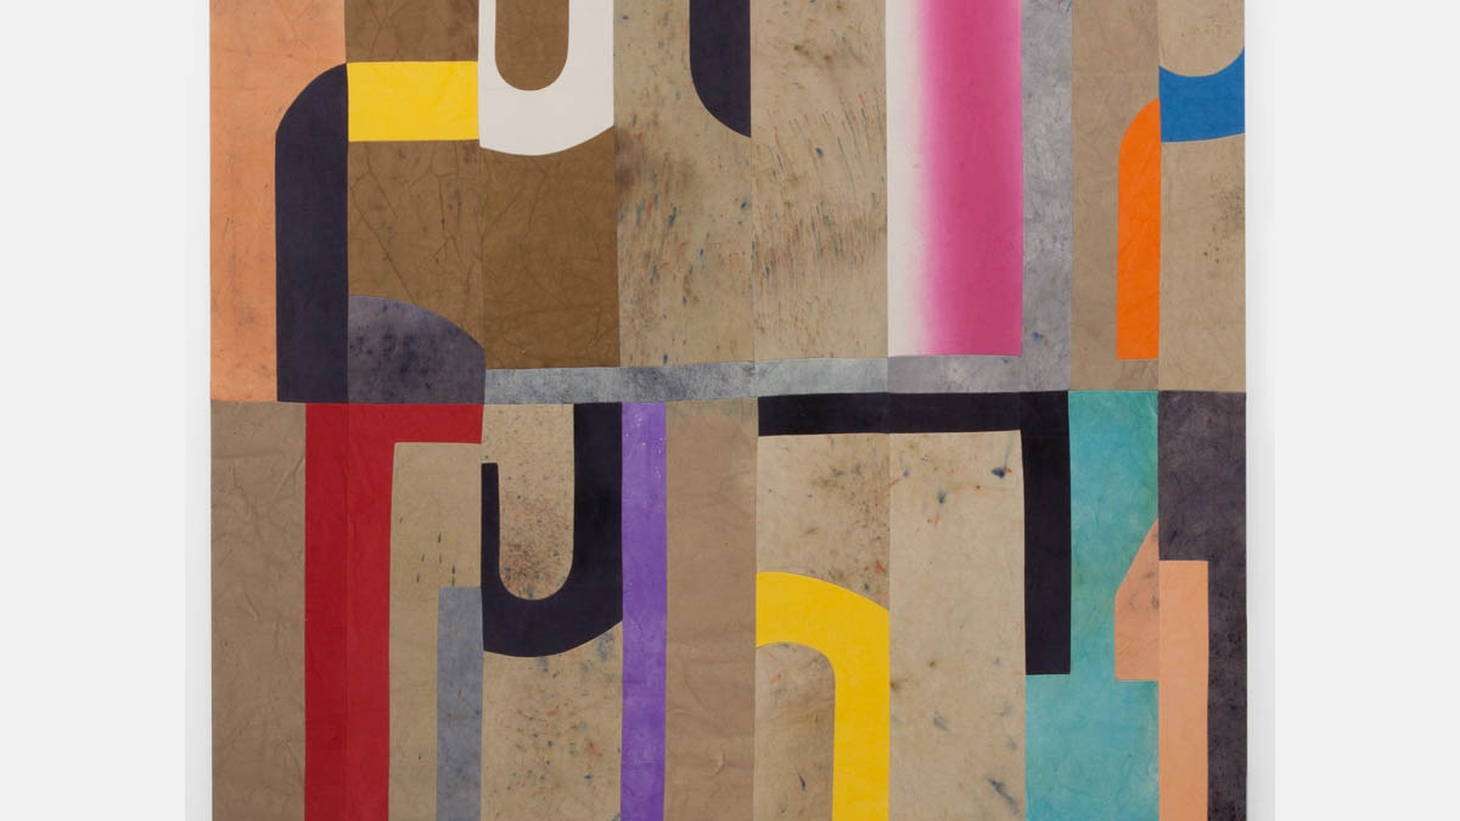 Hunter Drohojowska-Philp says don't miss this and other shows of abstract geometric art in Culver City.